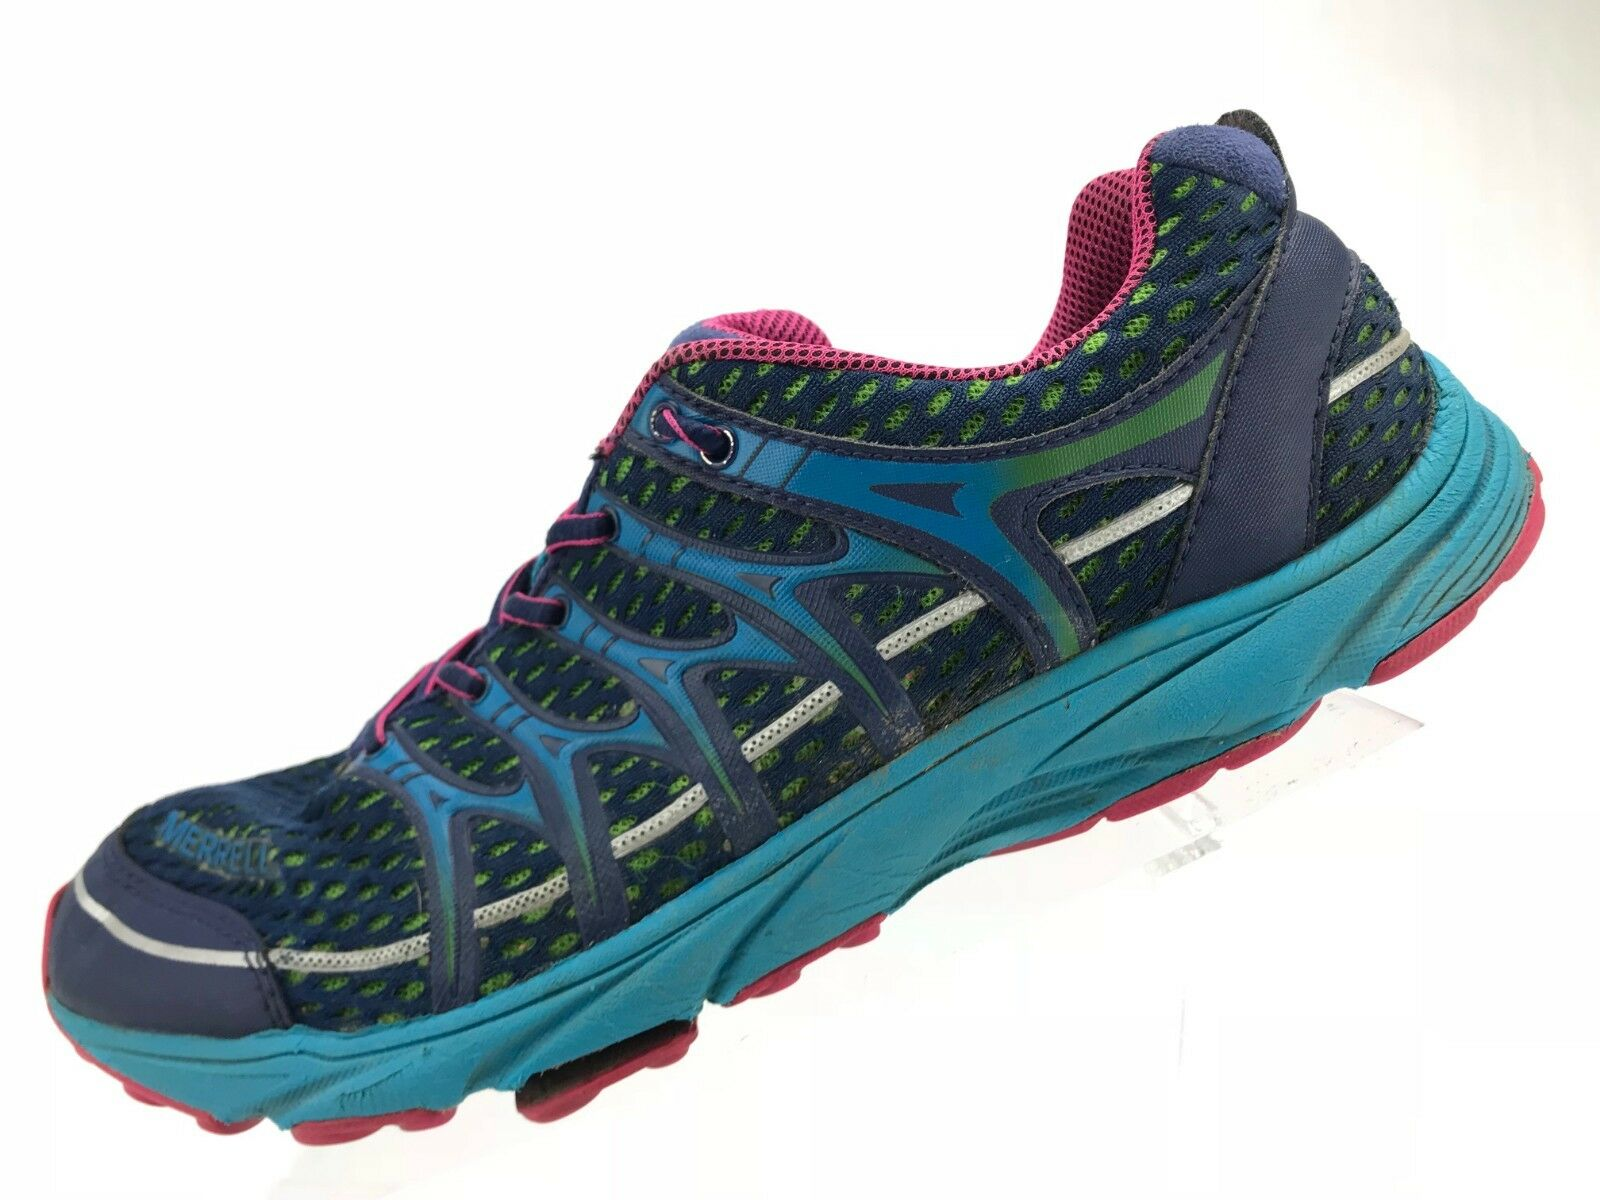 Merrell Mix Master Move Glide Running Sneakers Athletic shoes Women's Size 9.5